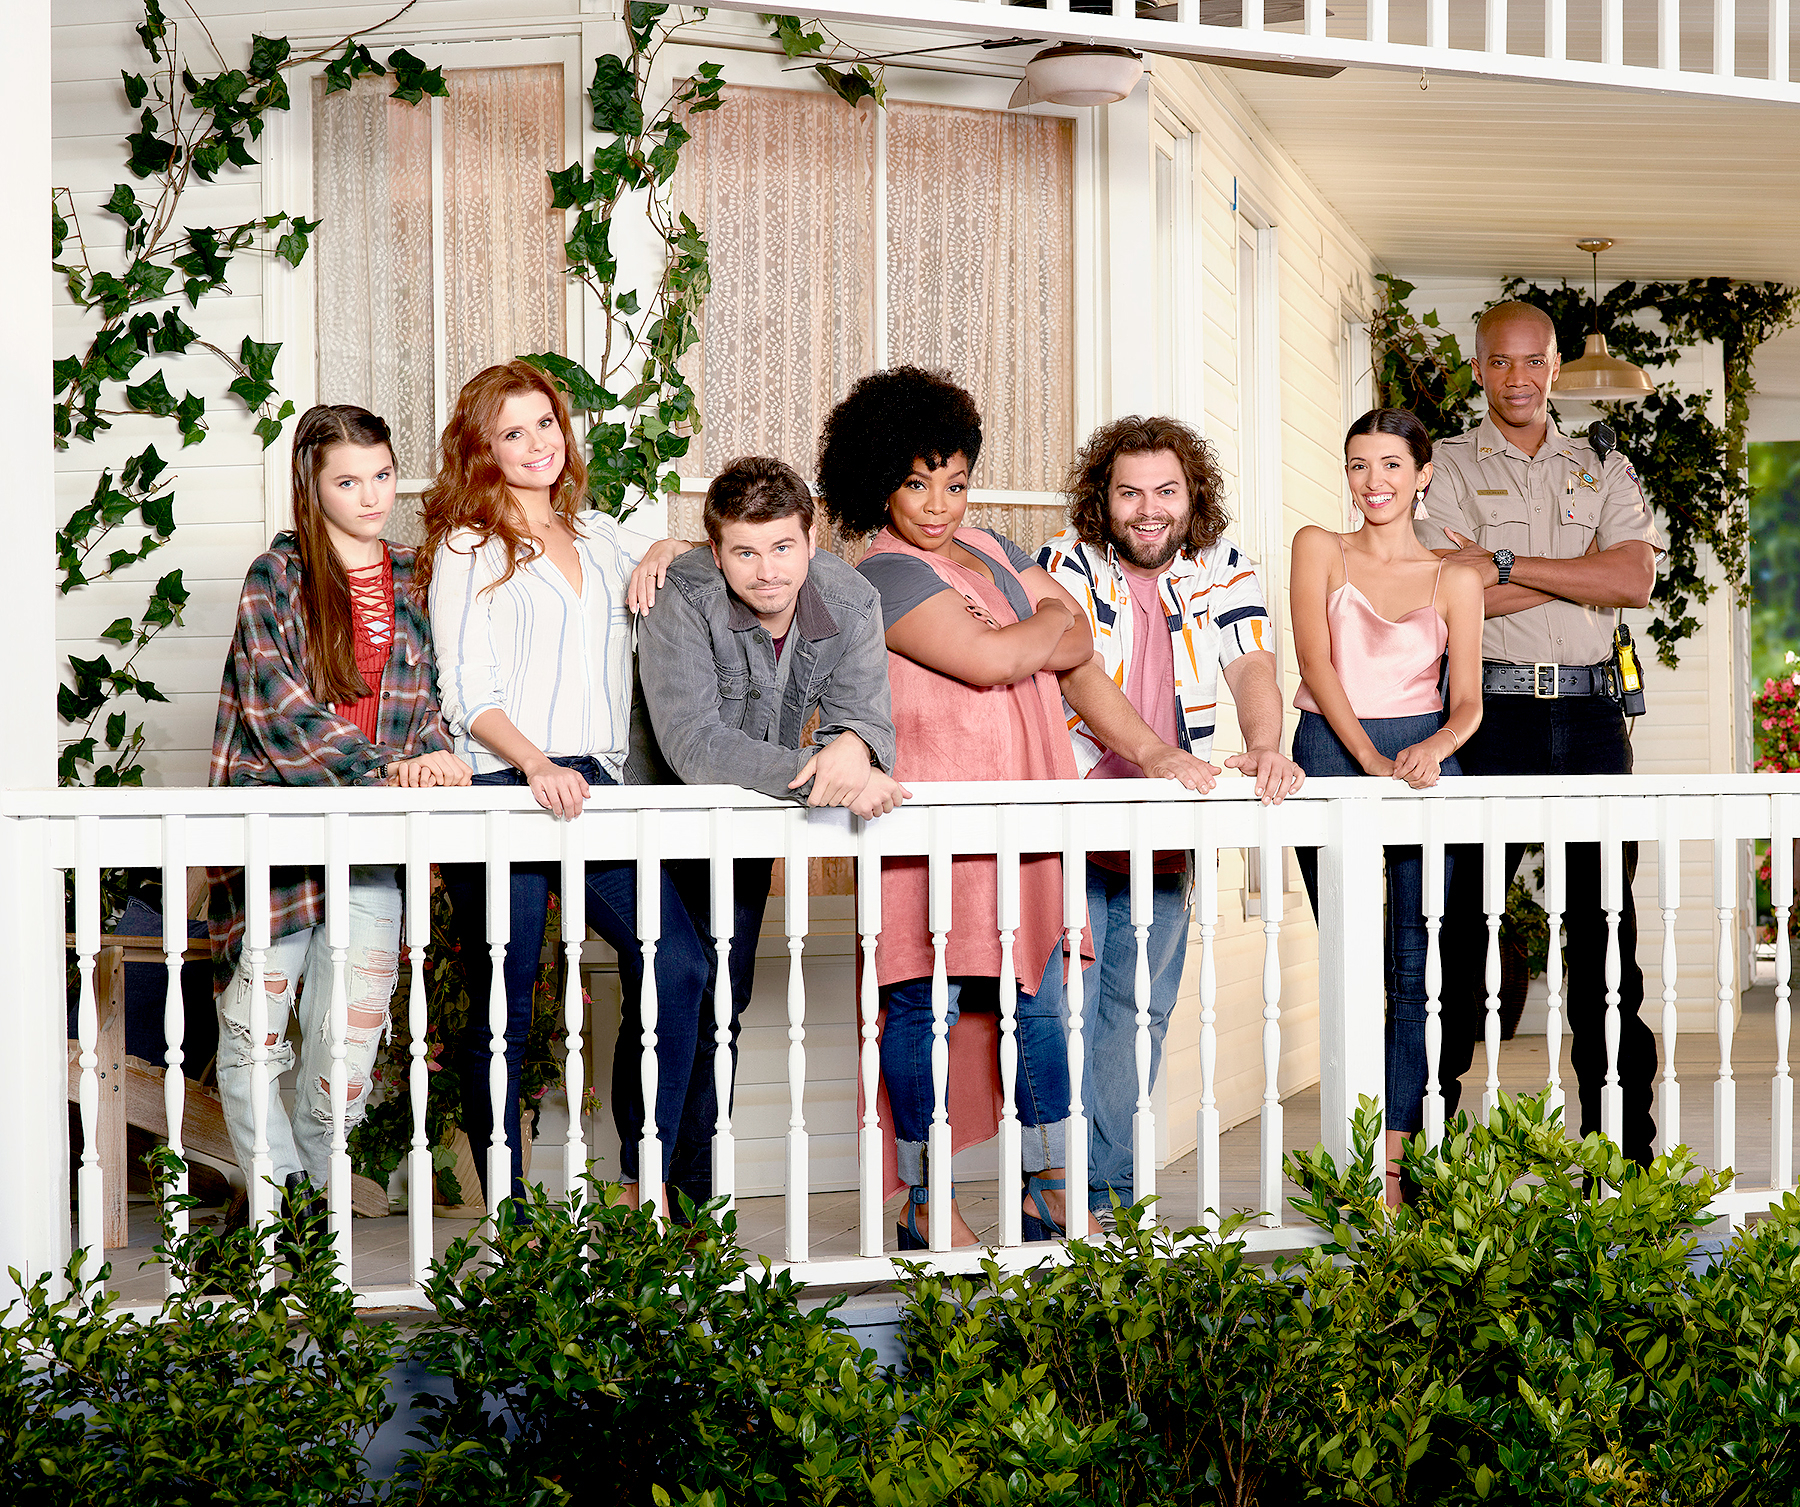 """Kevin (Probably) Saves the World"" stars Chloe East and Reese Cabrera, JoAnna Garcia Swisher as Amy Cabrera, Jason Ritter as Kevin Finn, Kimberly Hébert Gregory as Yvette, Dustin Ybarra as Tyler Medina, J. August Richards as Deputy Nate Purcell and India De Beaufort as Kristin Allen."